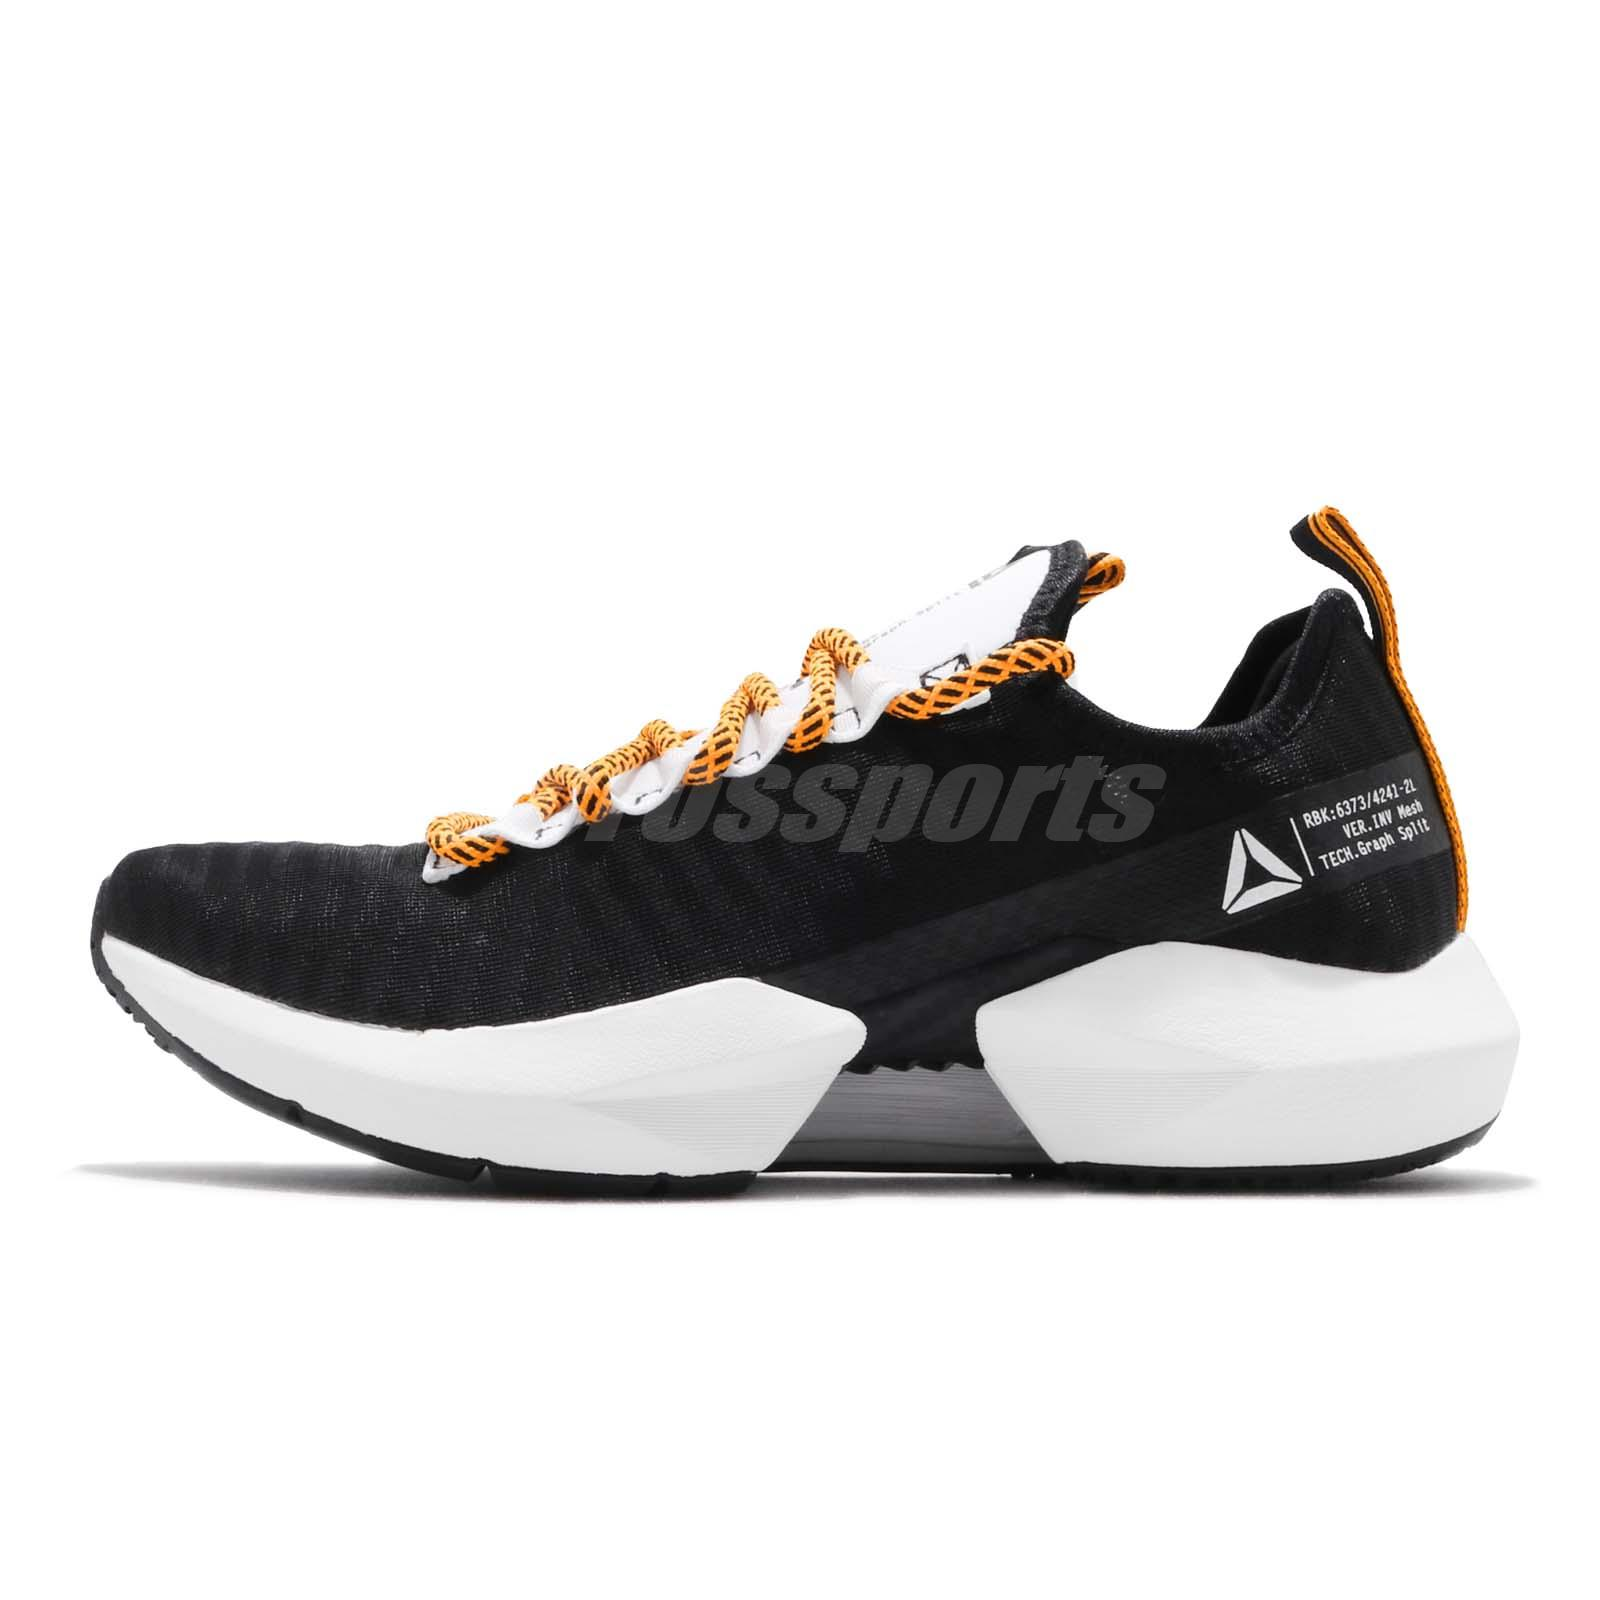 Reebok Sole Fury SE Black White Solar Gold Men Running Shoes Sneakers DV6919 33f72ab54